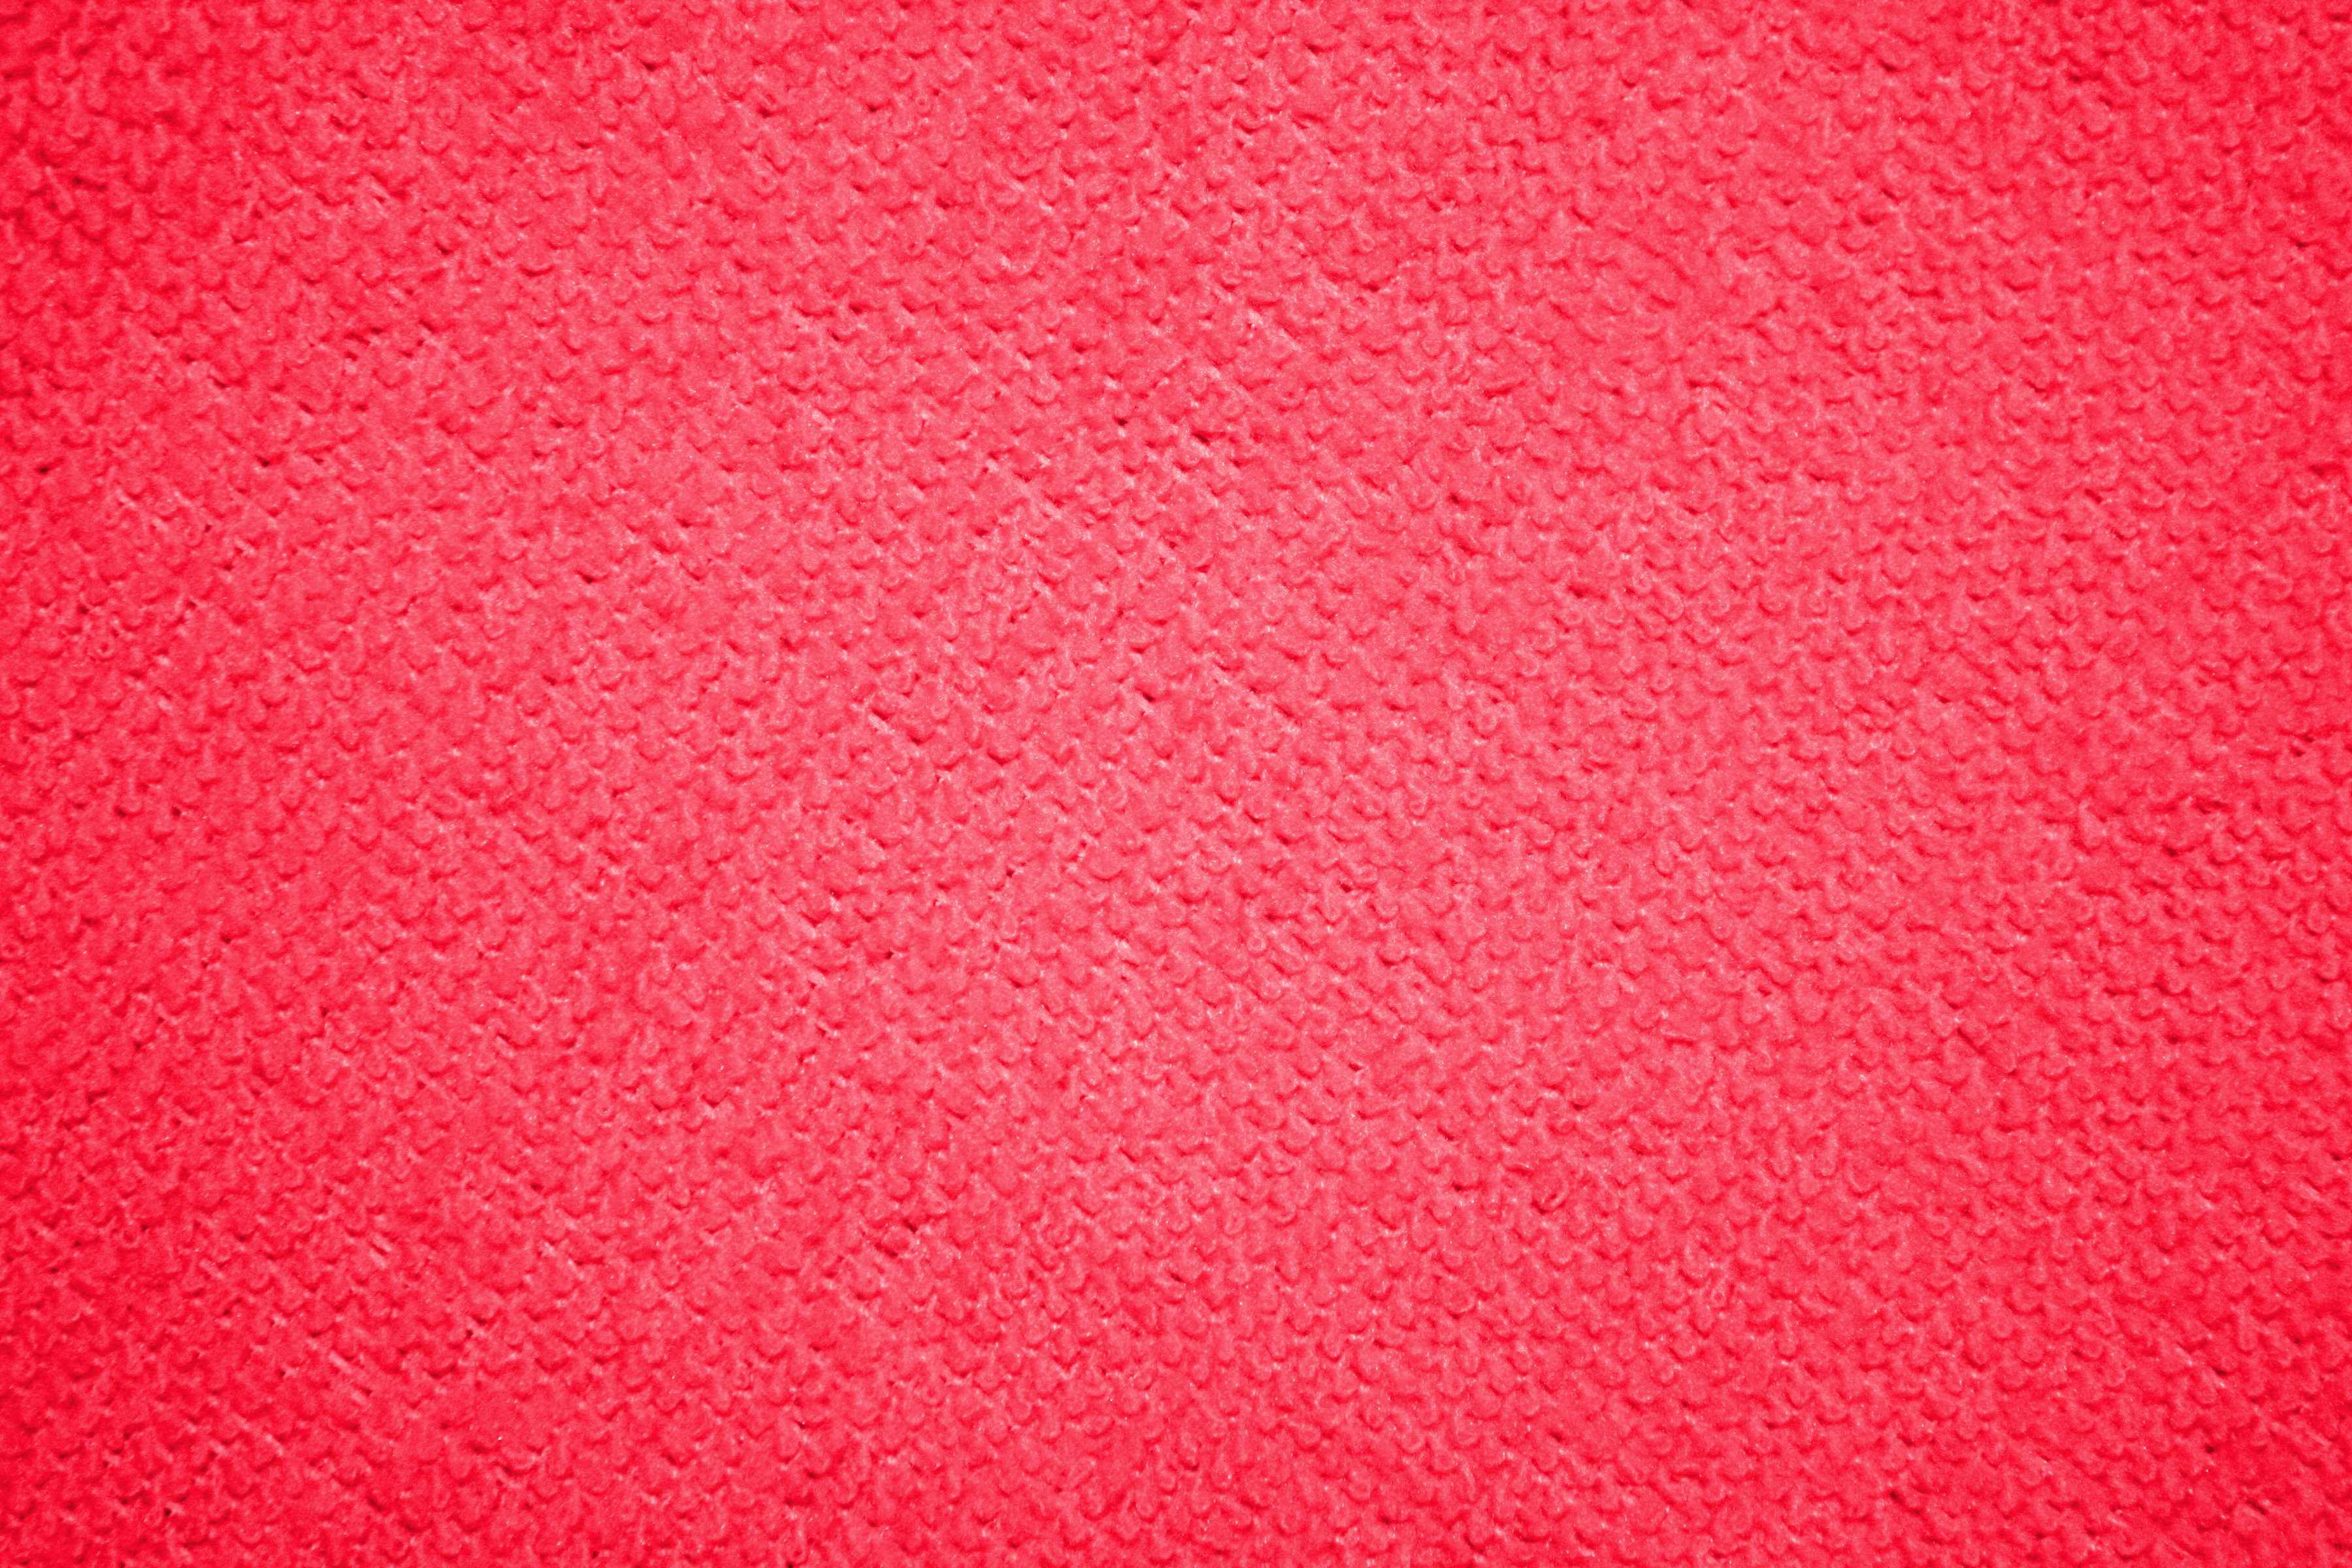 Red Microfiber Cloth Fabric Texture Picture Free